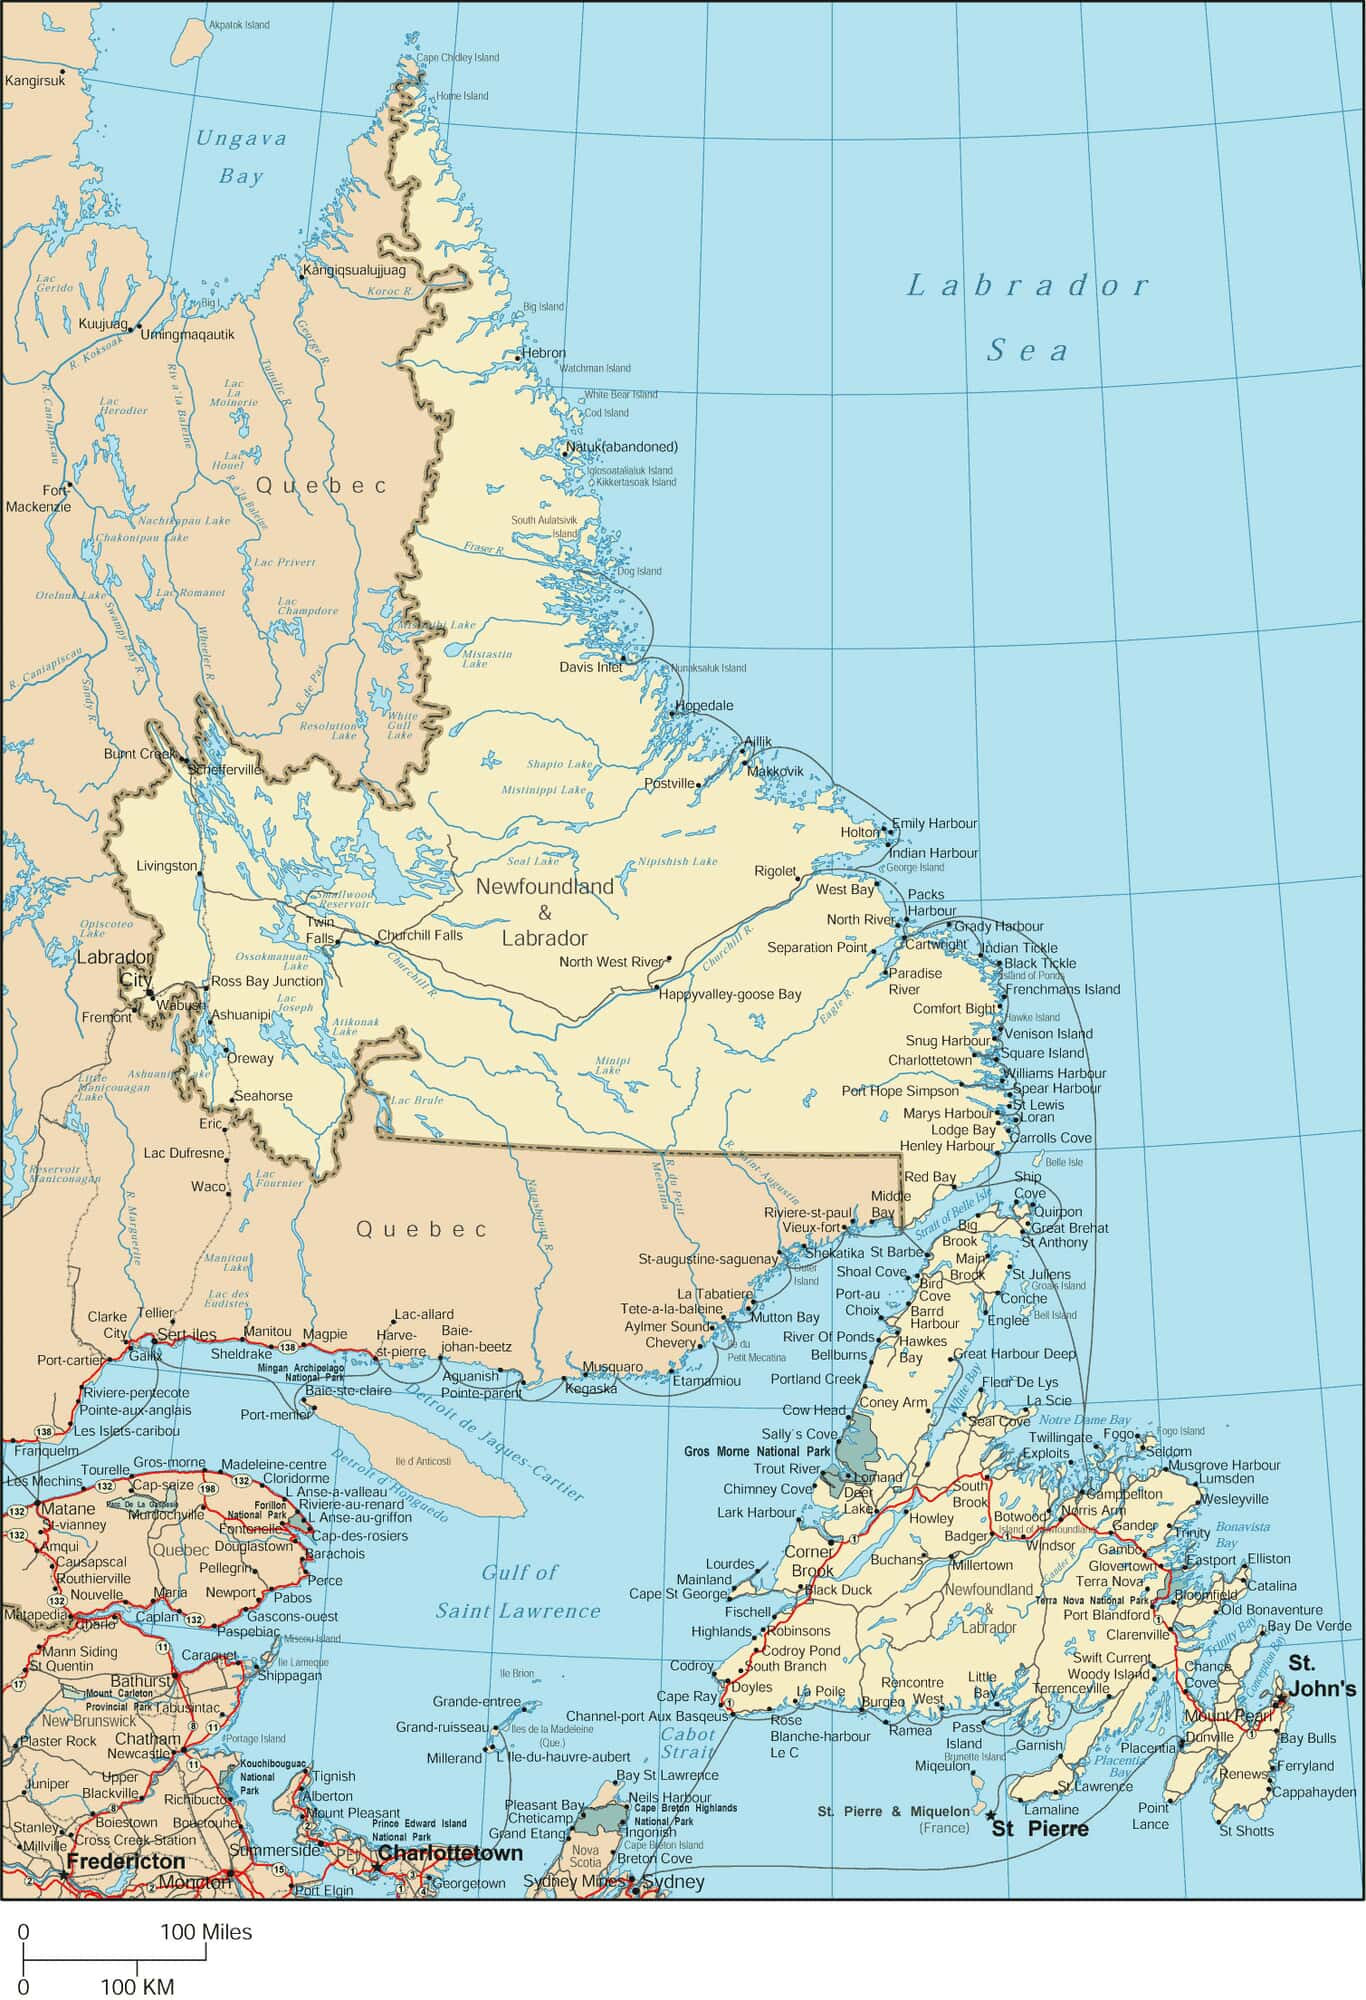 for enhanced readability use a large paper size with small margins to print this large map of newfoundland and labrador